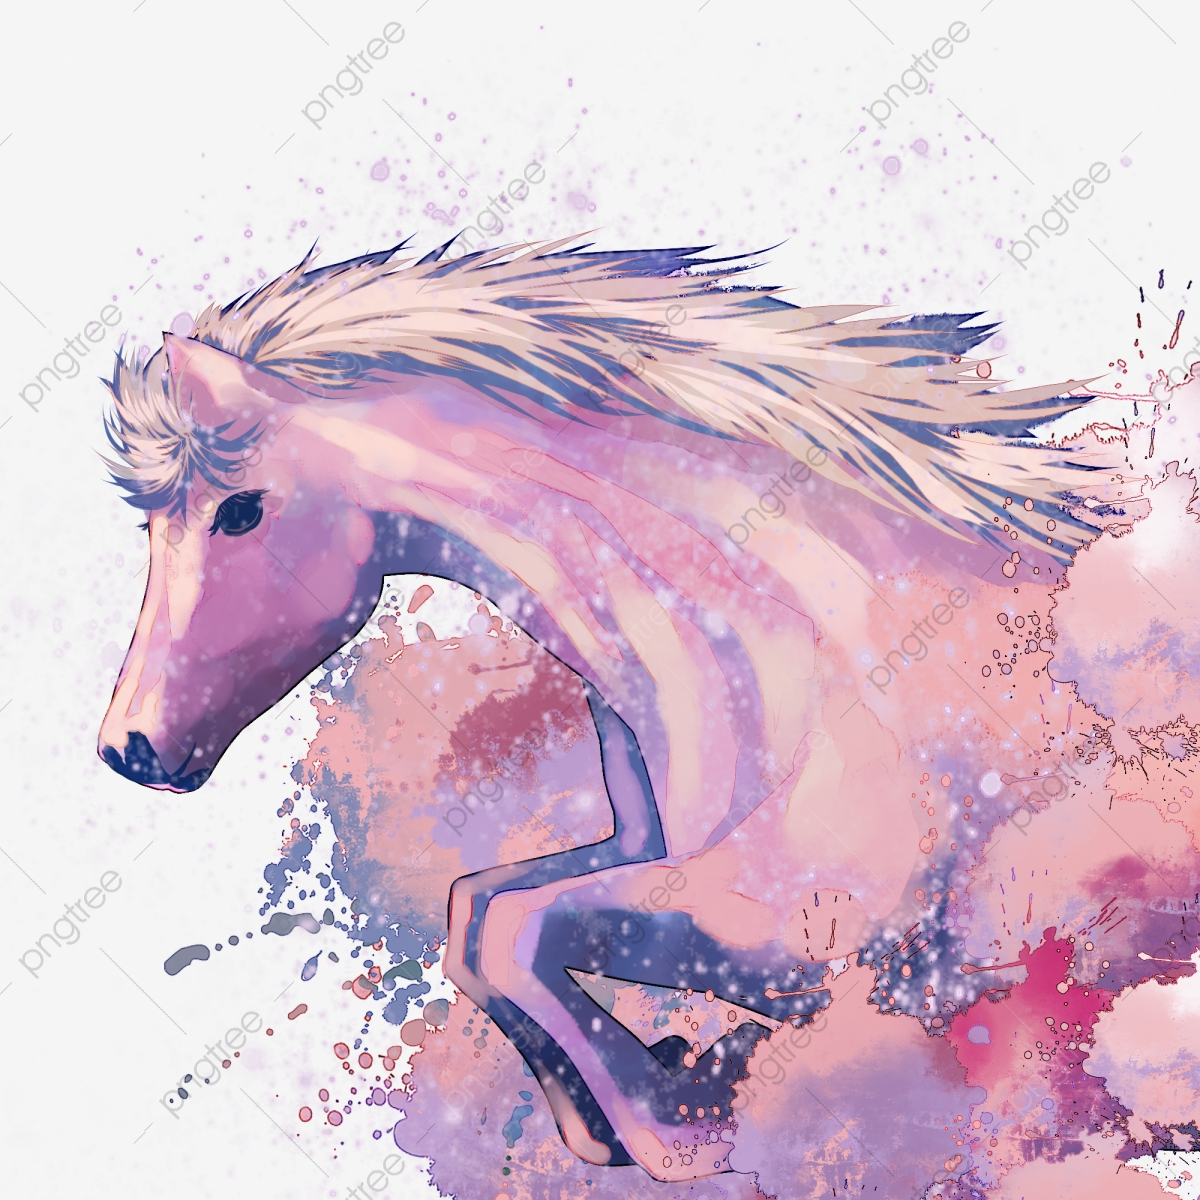 Watercolor Horse Png Vector Psd And Clipart With Transparent Background For Free Download Pngtree